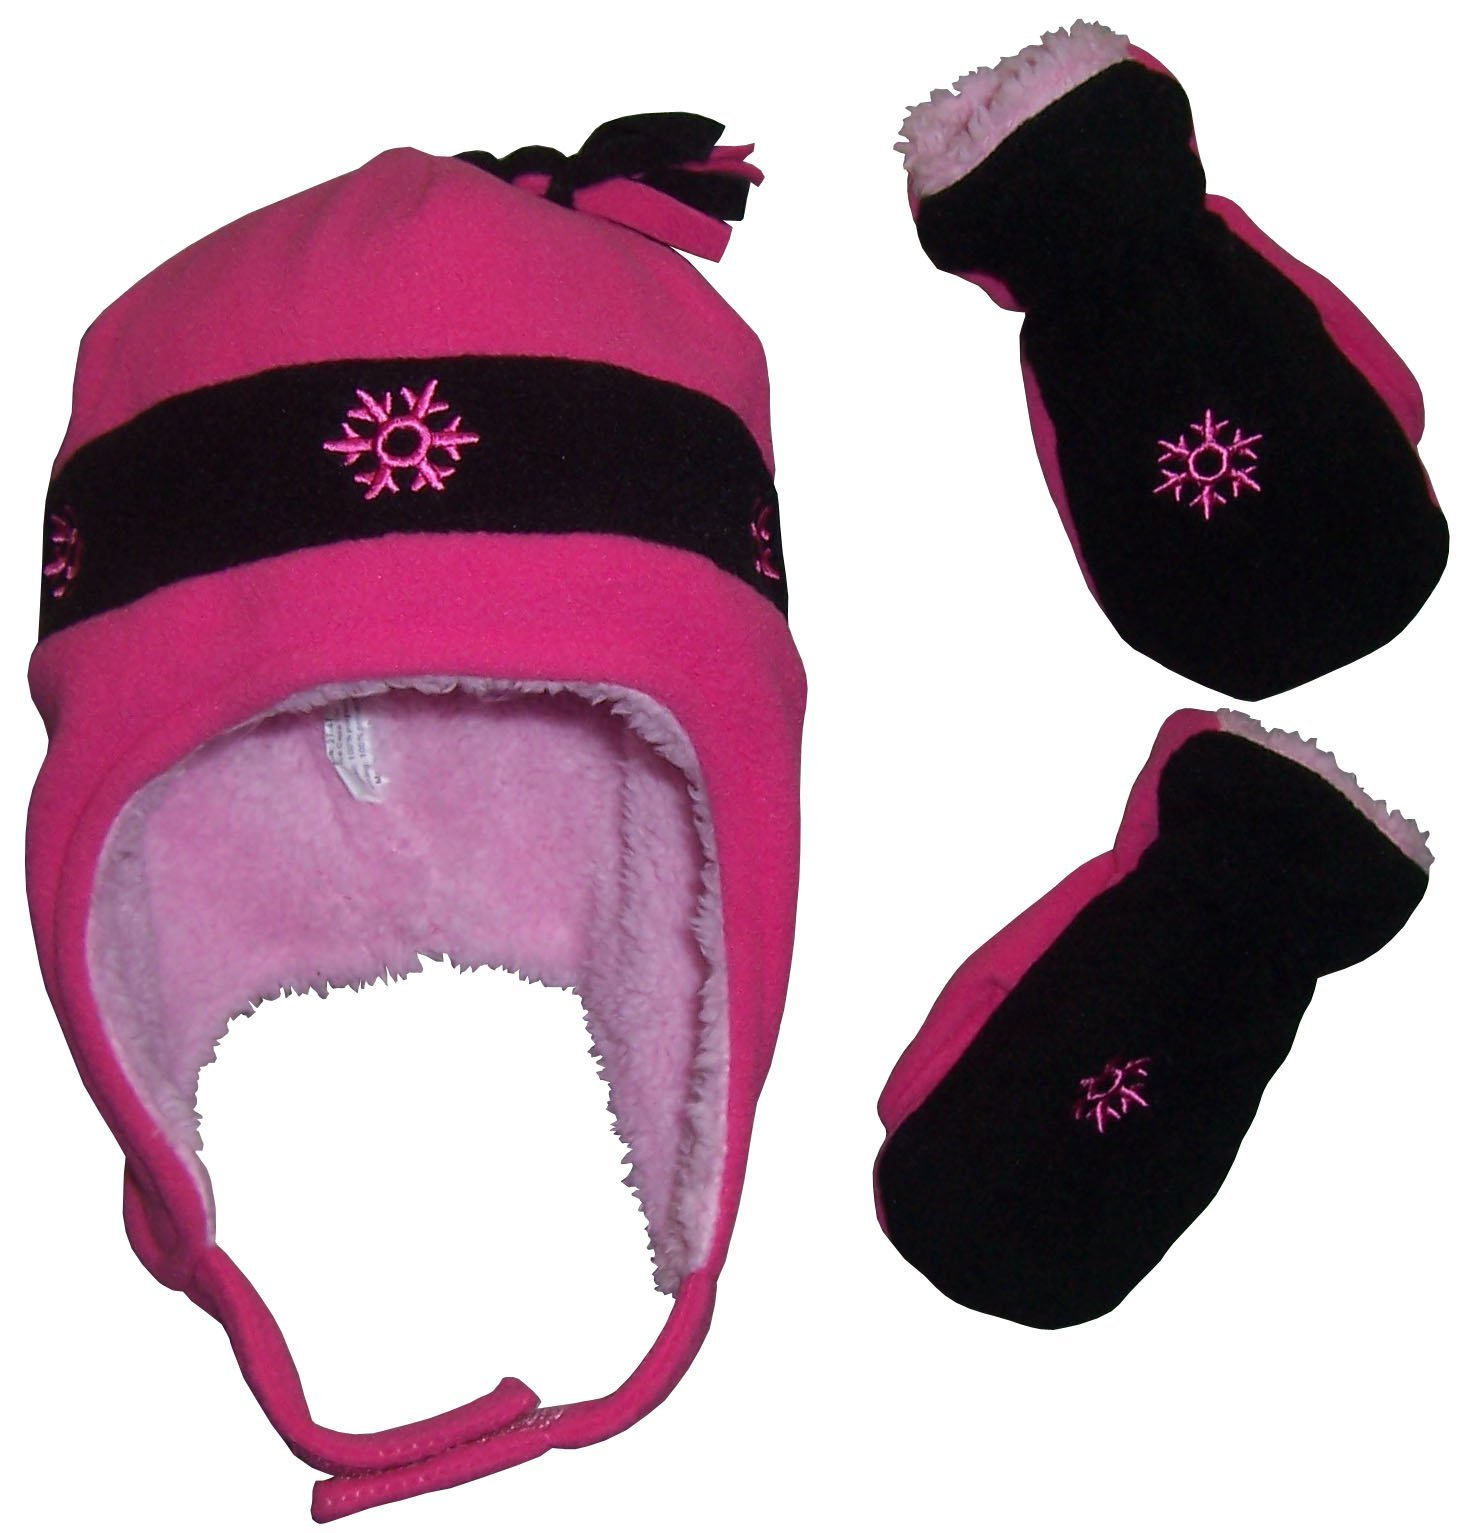 N'Ice Caps Girls Snow Embroidered Sherpa Lined Micro Fleece Hat and Mitten Set (18-36 Months, Fuchsia/Black)